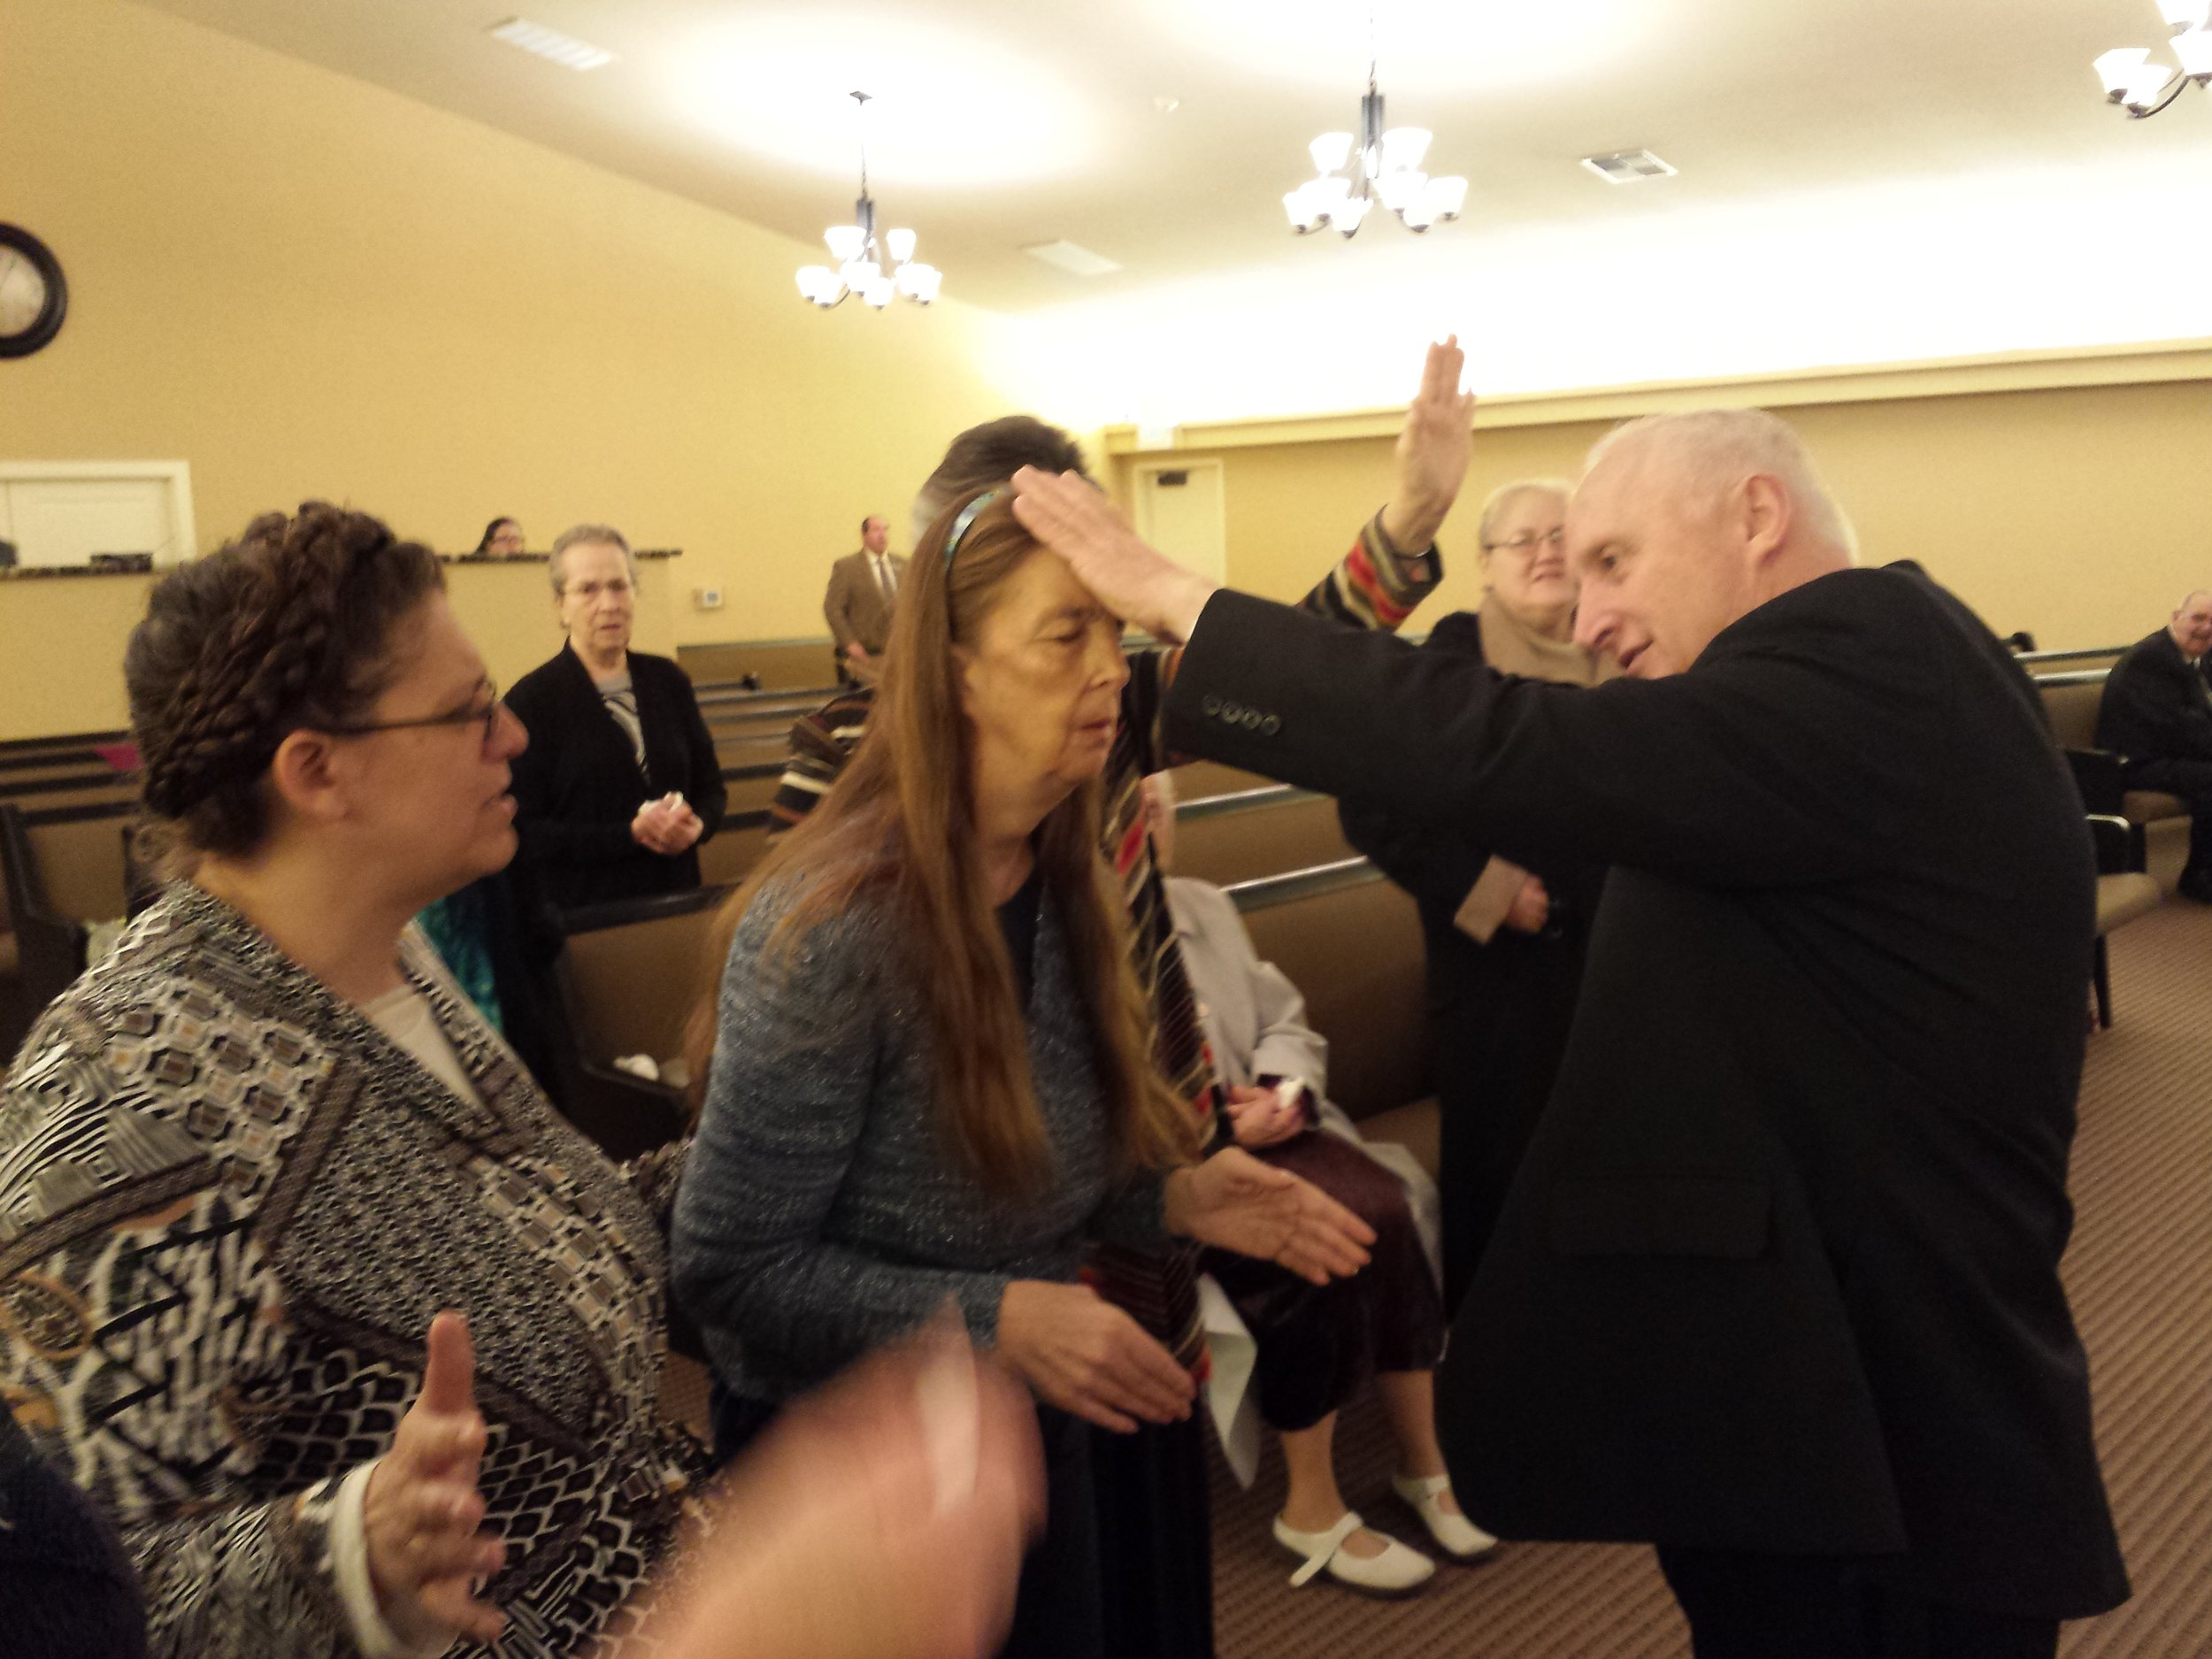 Lisa Dell seeking for the Holy Ghost